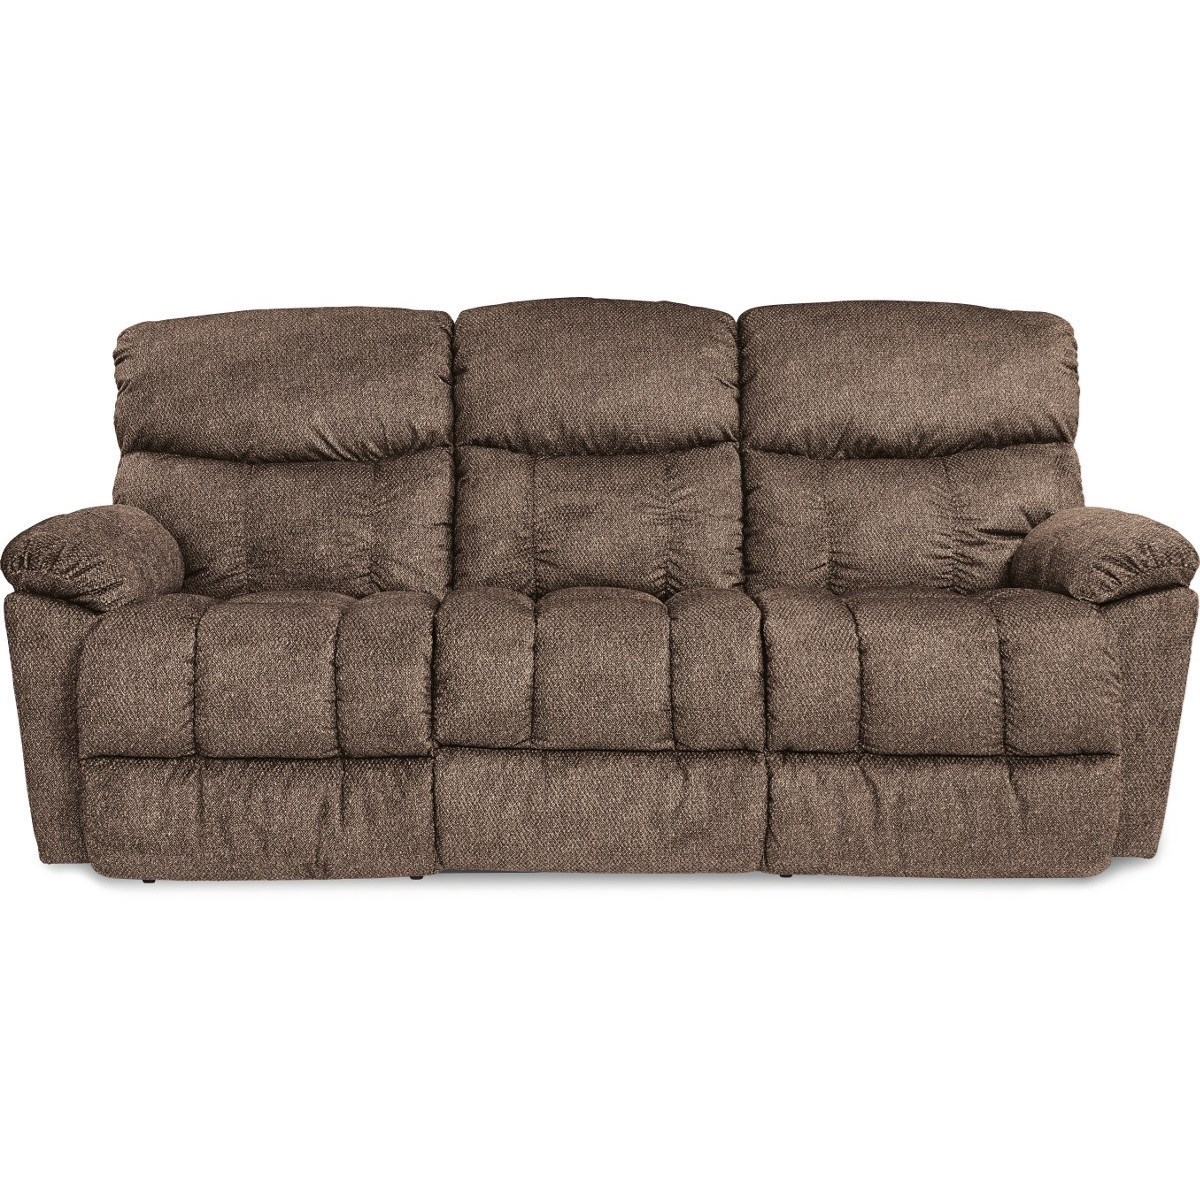 Morrison Power Reclining Sofa by La-Z-Boy at Sparks HomeStore